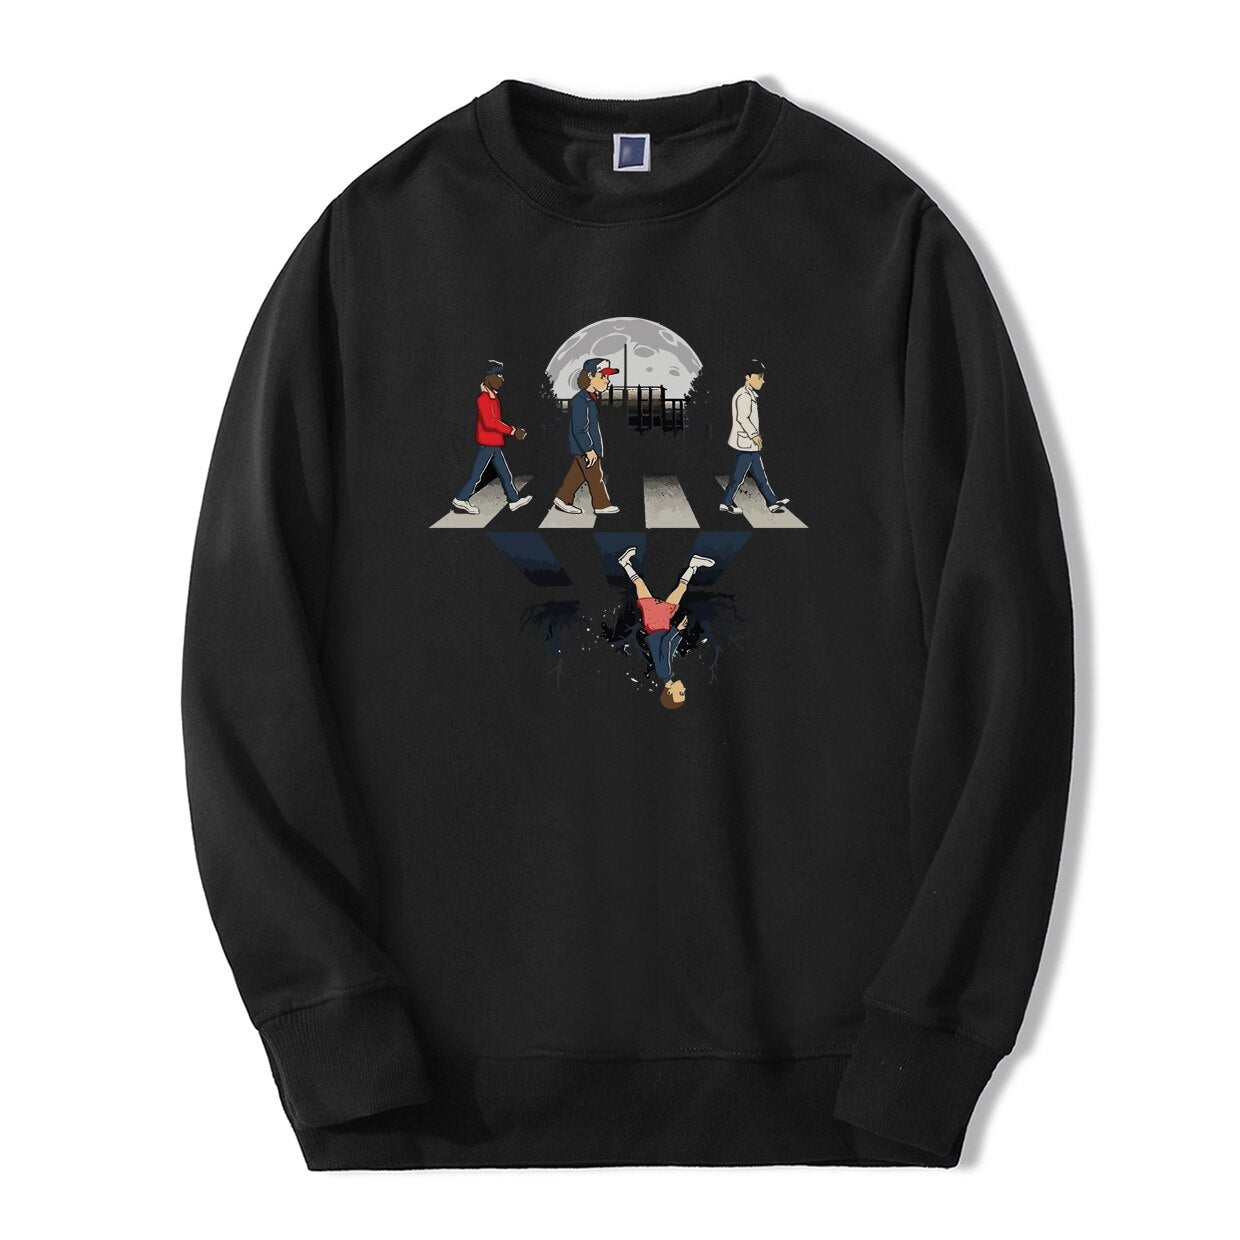 Stranger Things Sweatshirt Beatles crosswalk